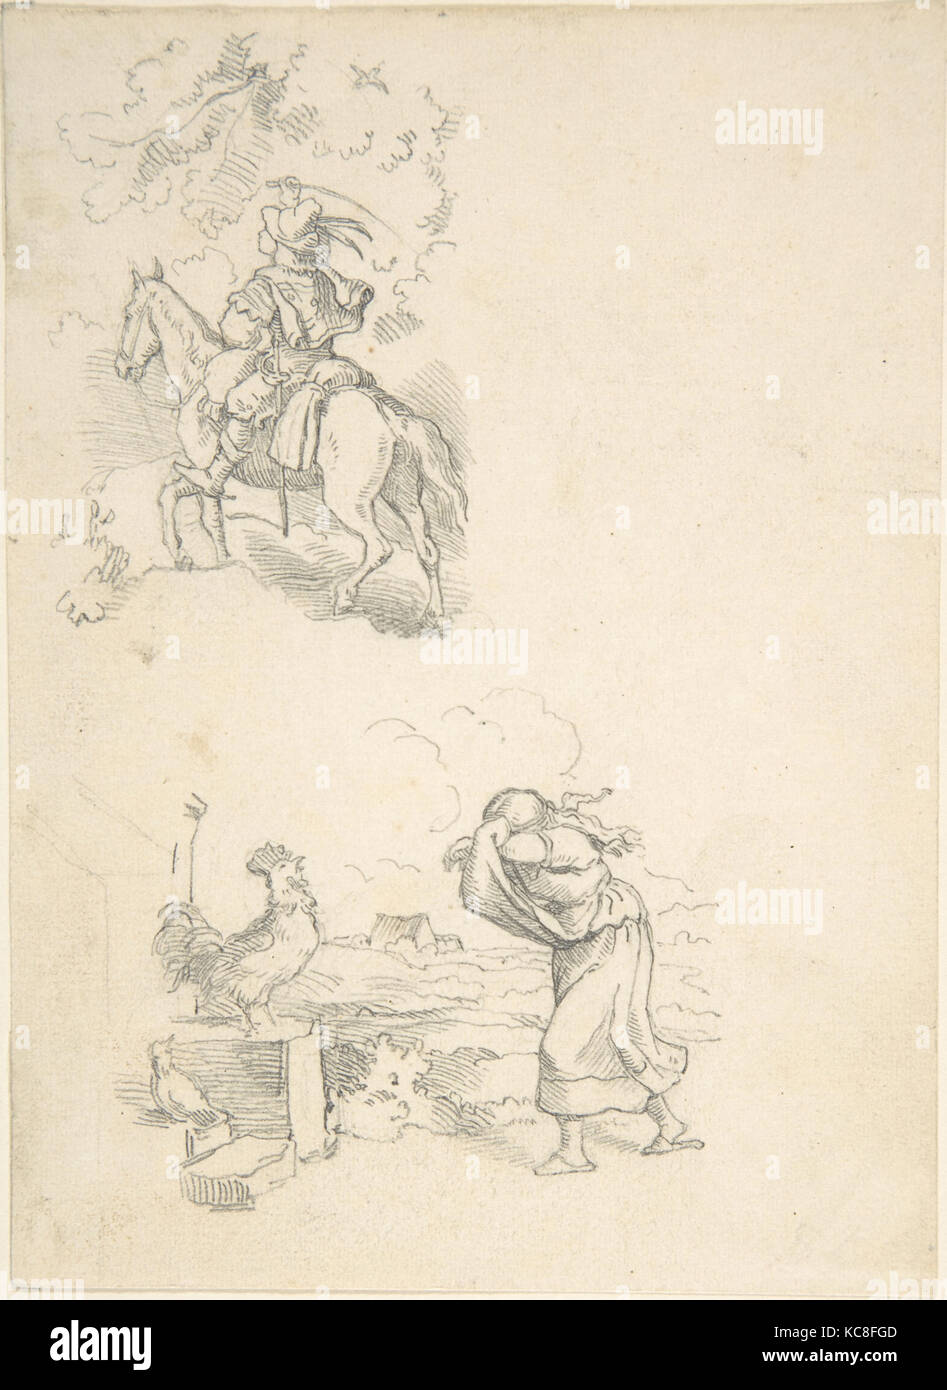 Two Designs for Illustration, Adrian Ludwig Richter, 1820–84 Stock Photo